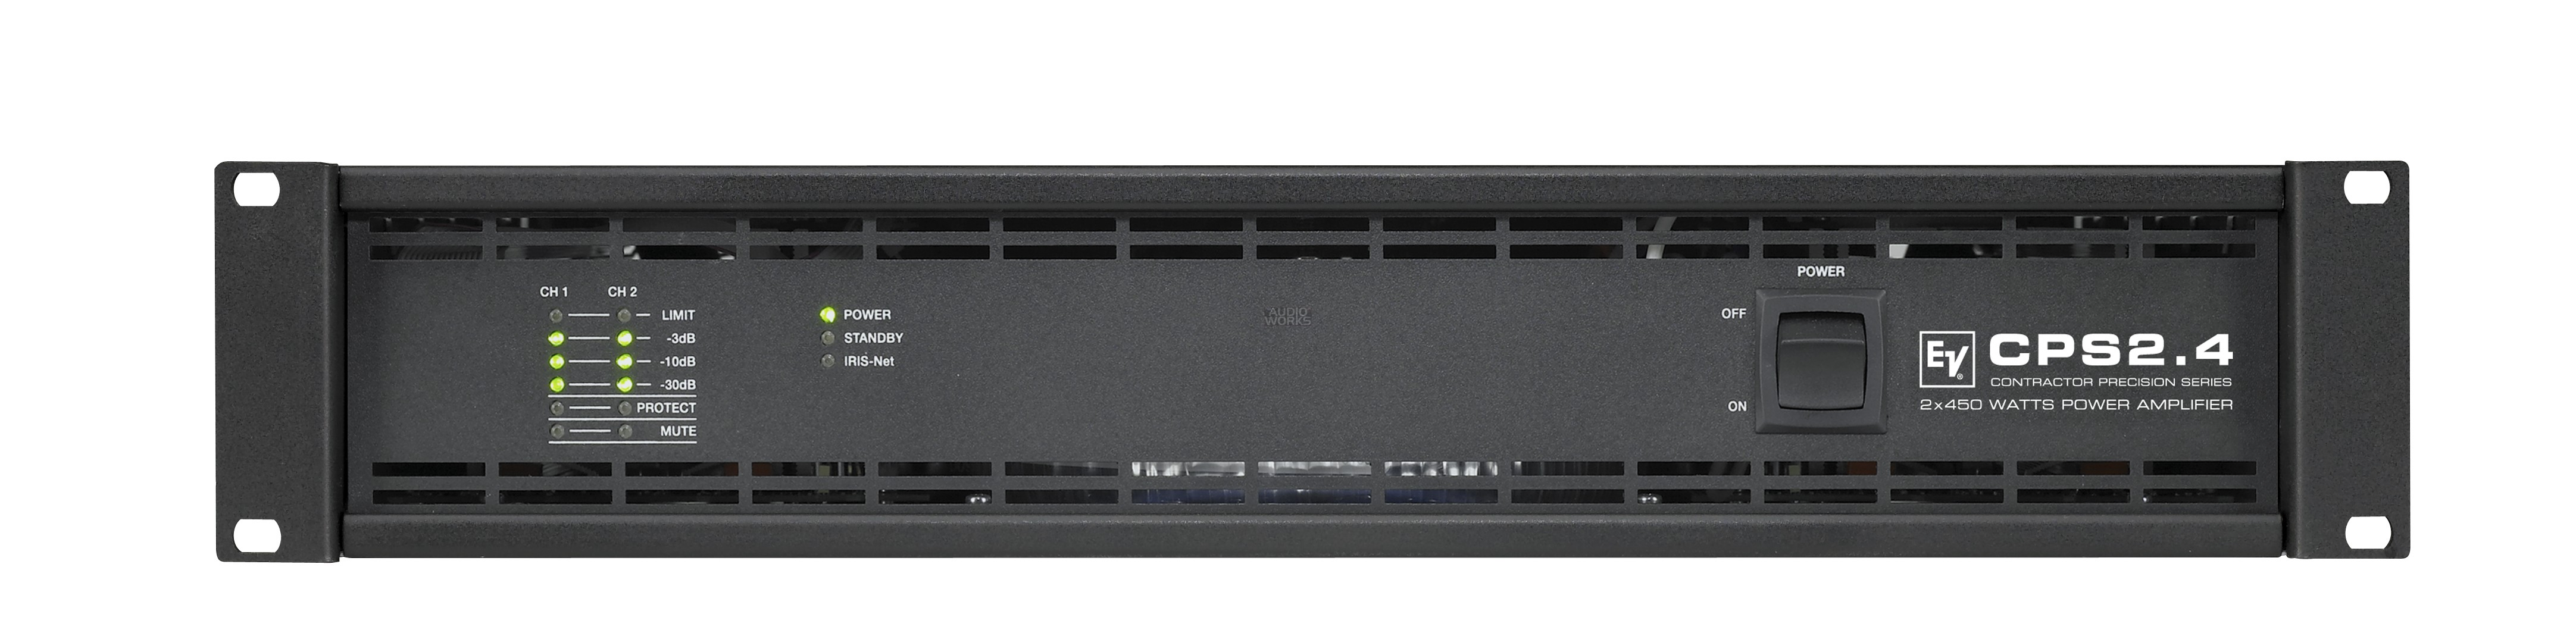 ELECTROVOICE CPS 2.4 MK11 1300W POWER AMPLIFIER